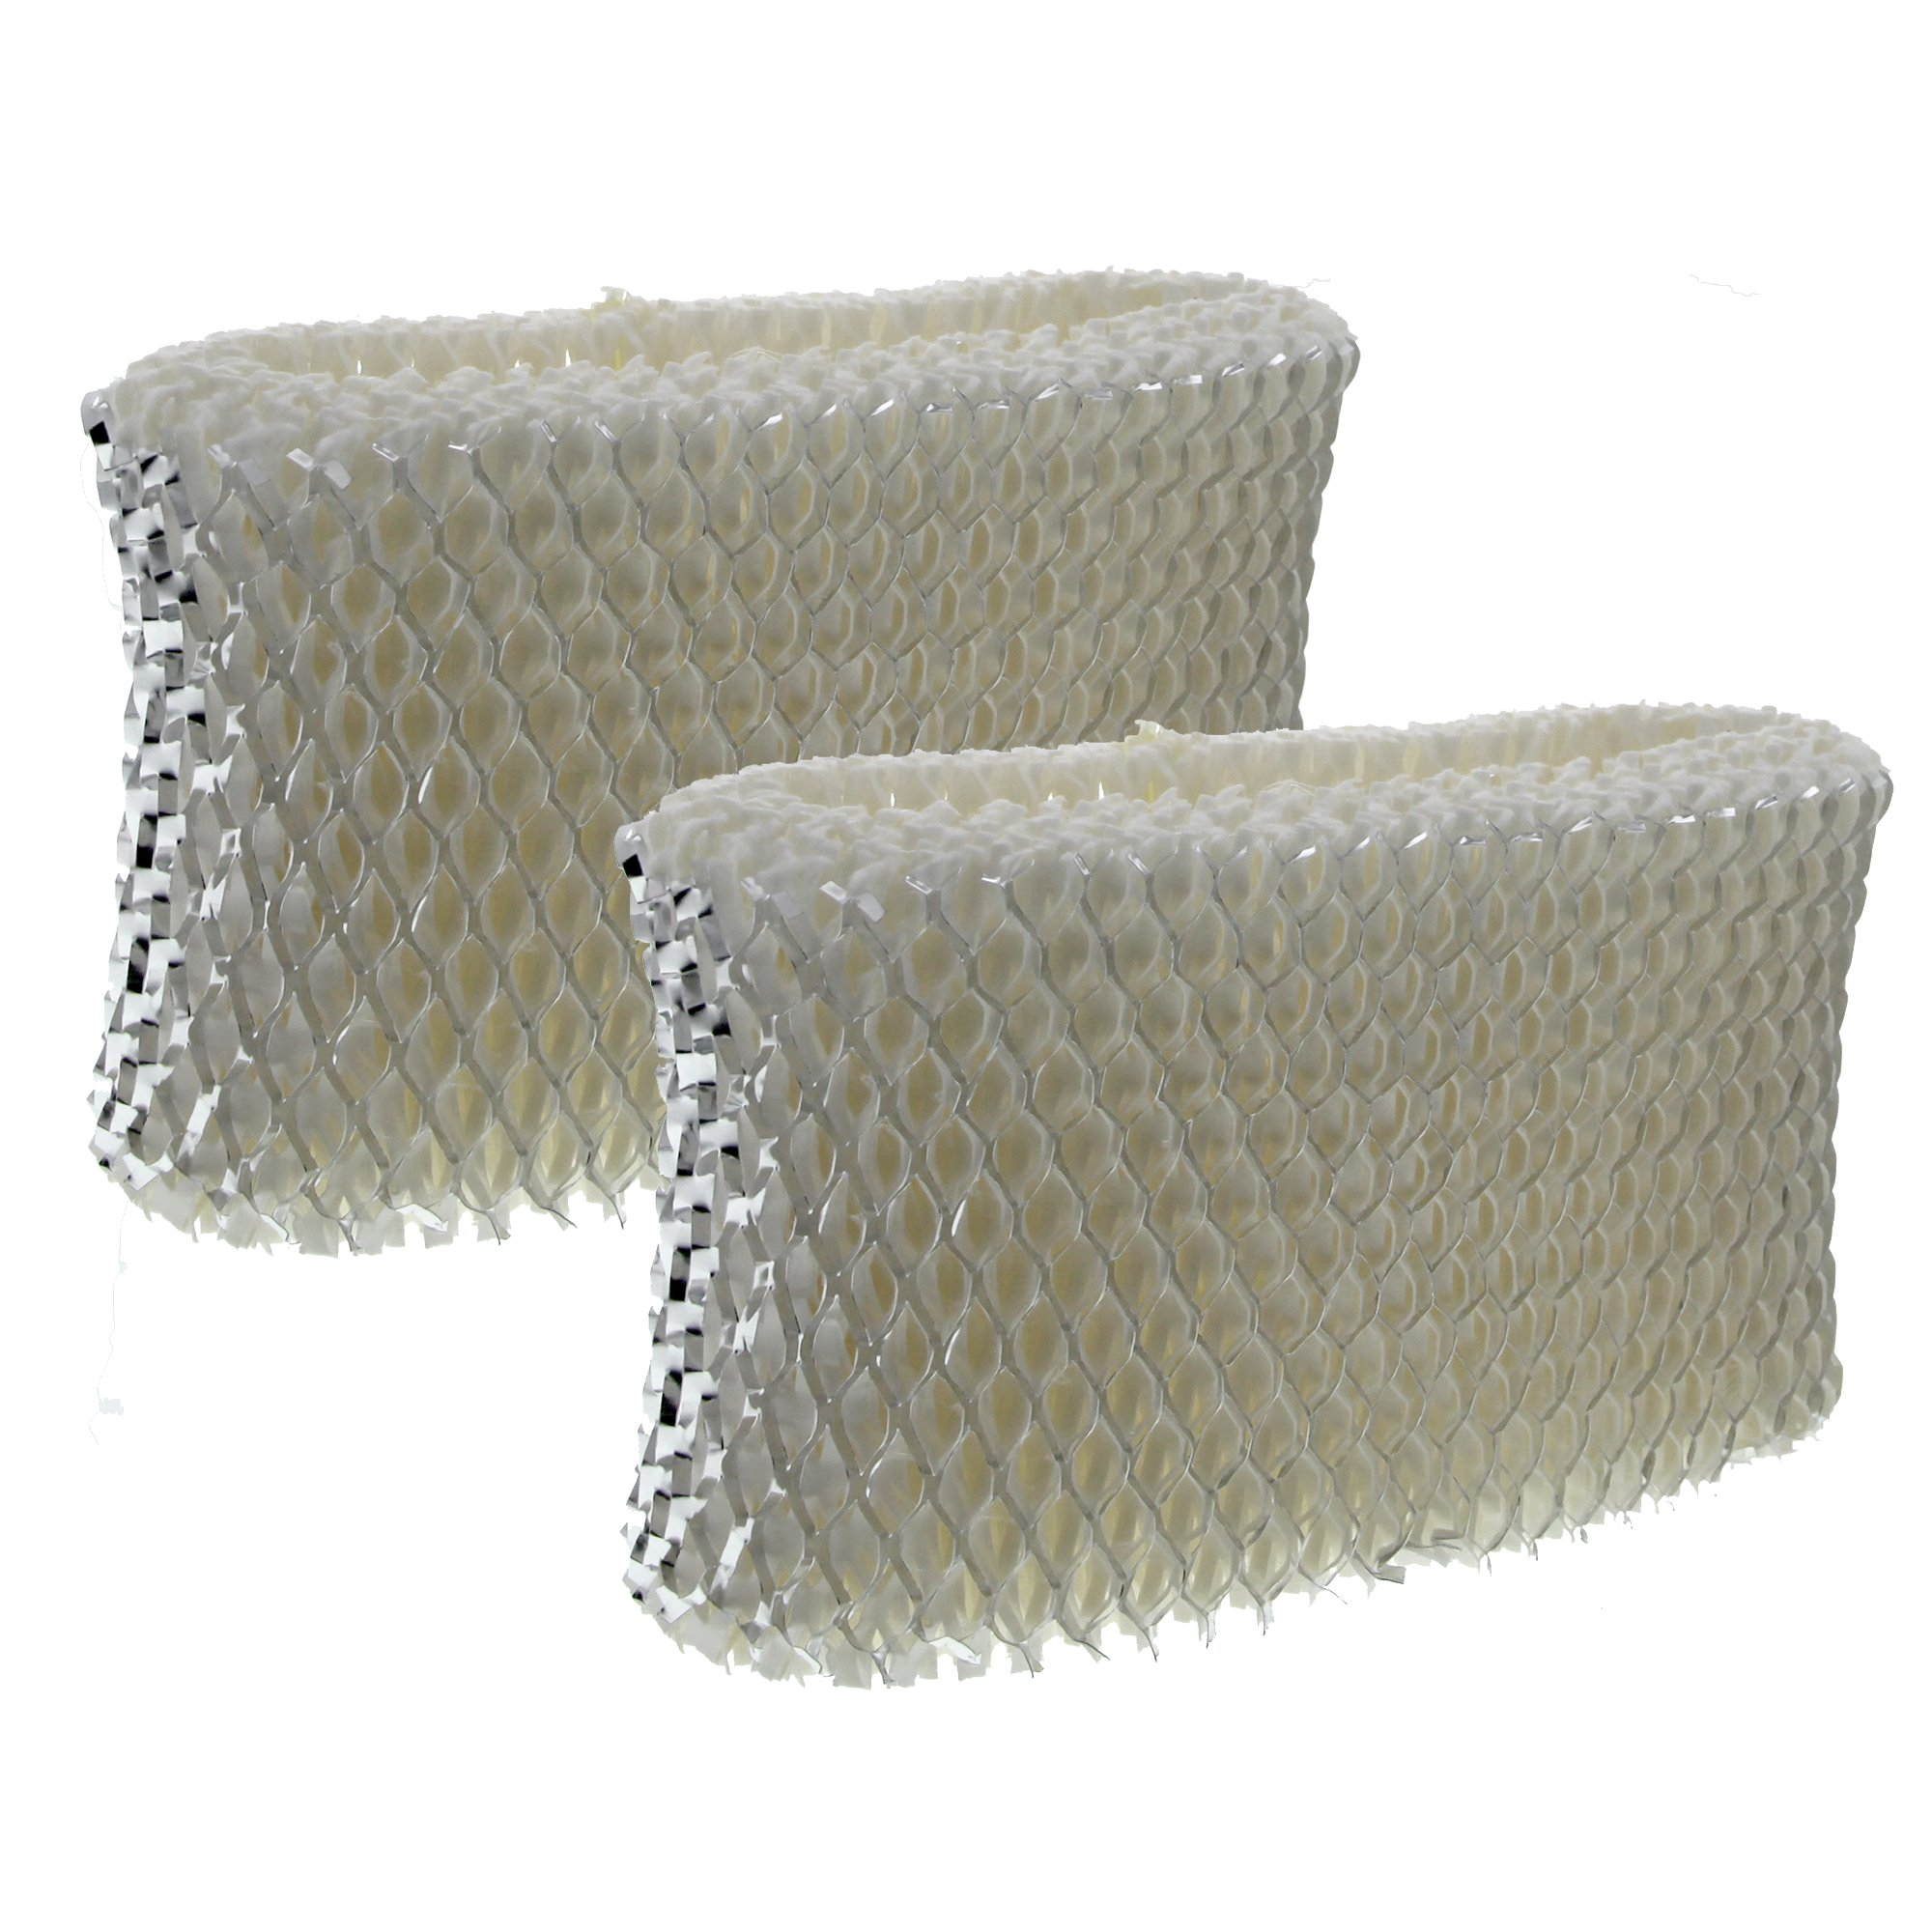 Tier1 Replacement for Honeywell HAC-504AW HCM-530 HCM-535-20 Wick Filter 2 Pack by Tier1